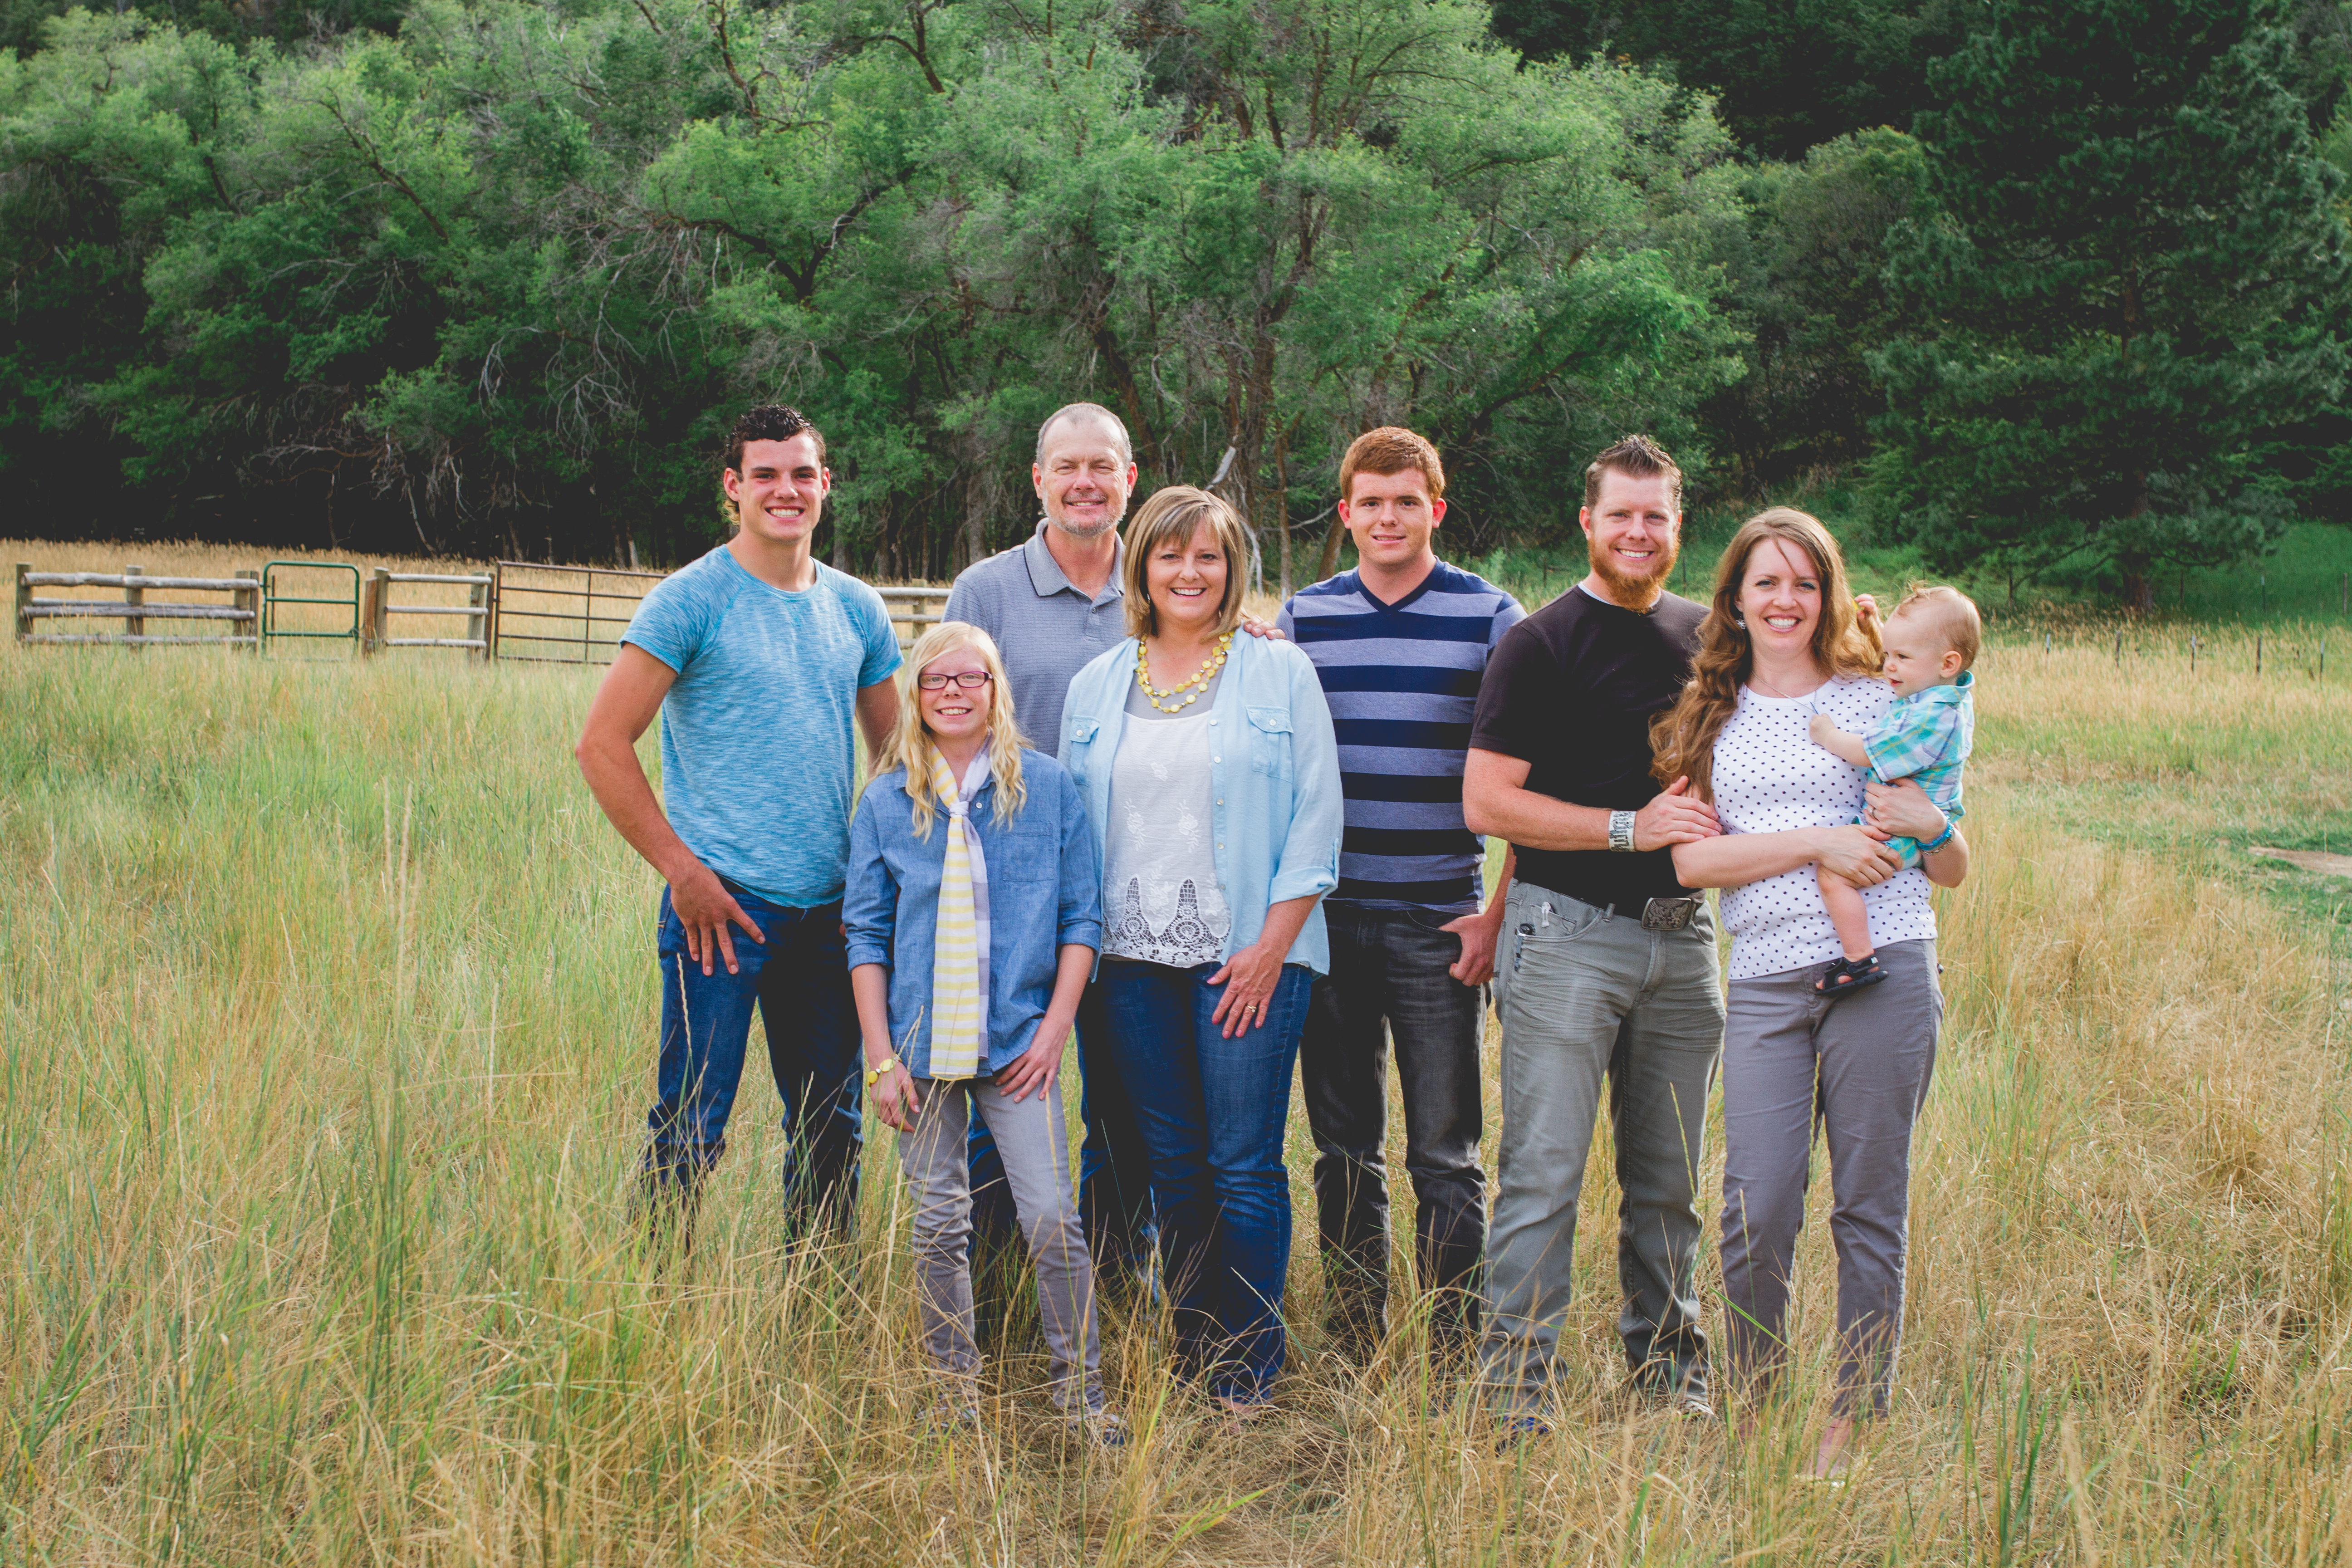 family portraits | BDE photography by Raecale | Cache County Photographer | traveling photographer | photographer lives in a converted vintage bus with her family of 7 | utah photographer | lifestyle photographer